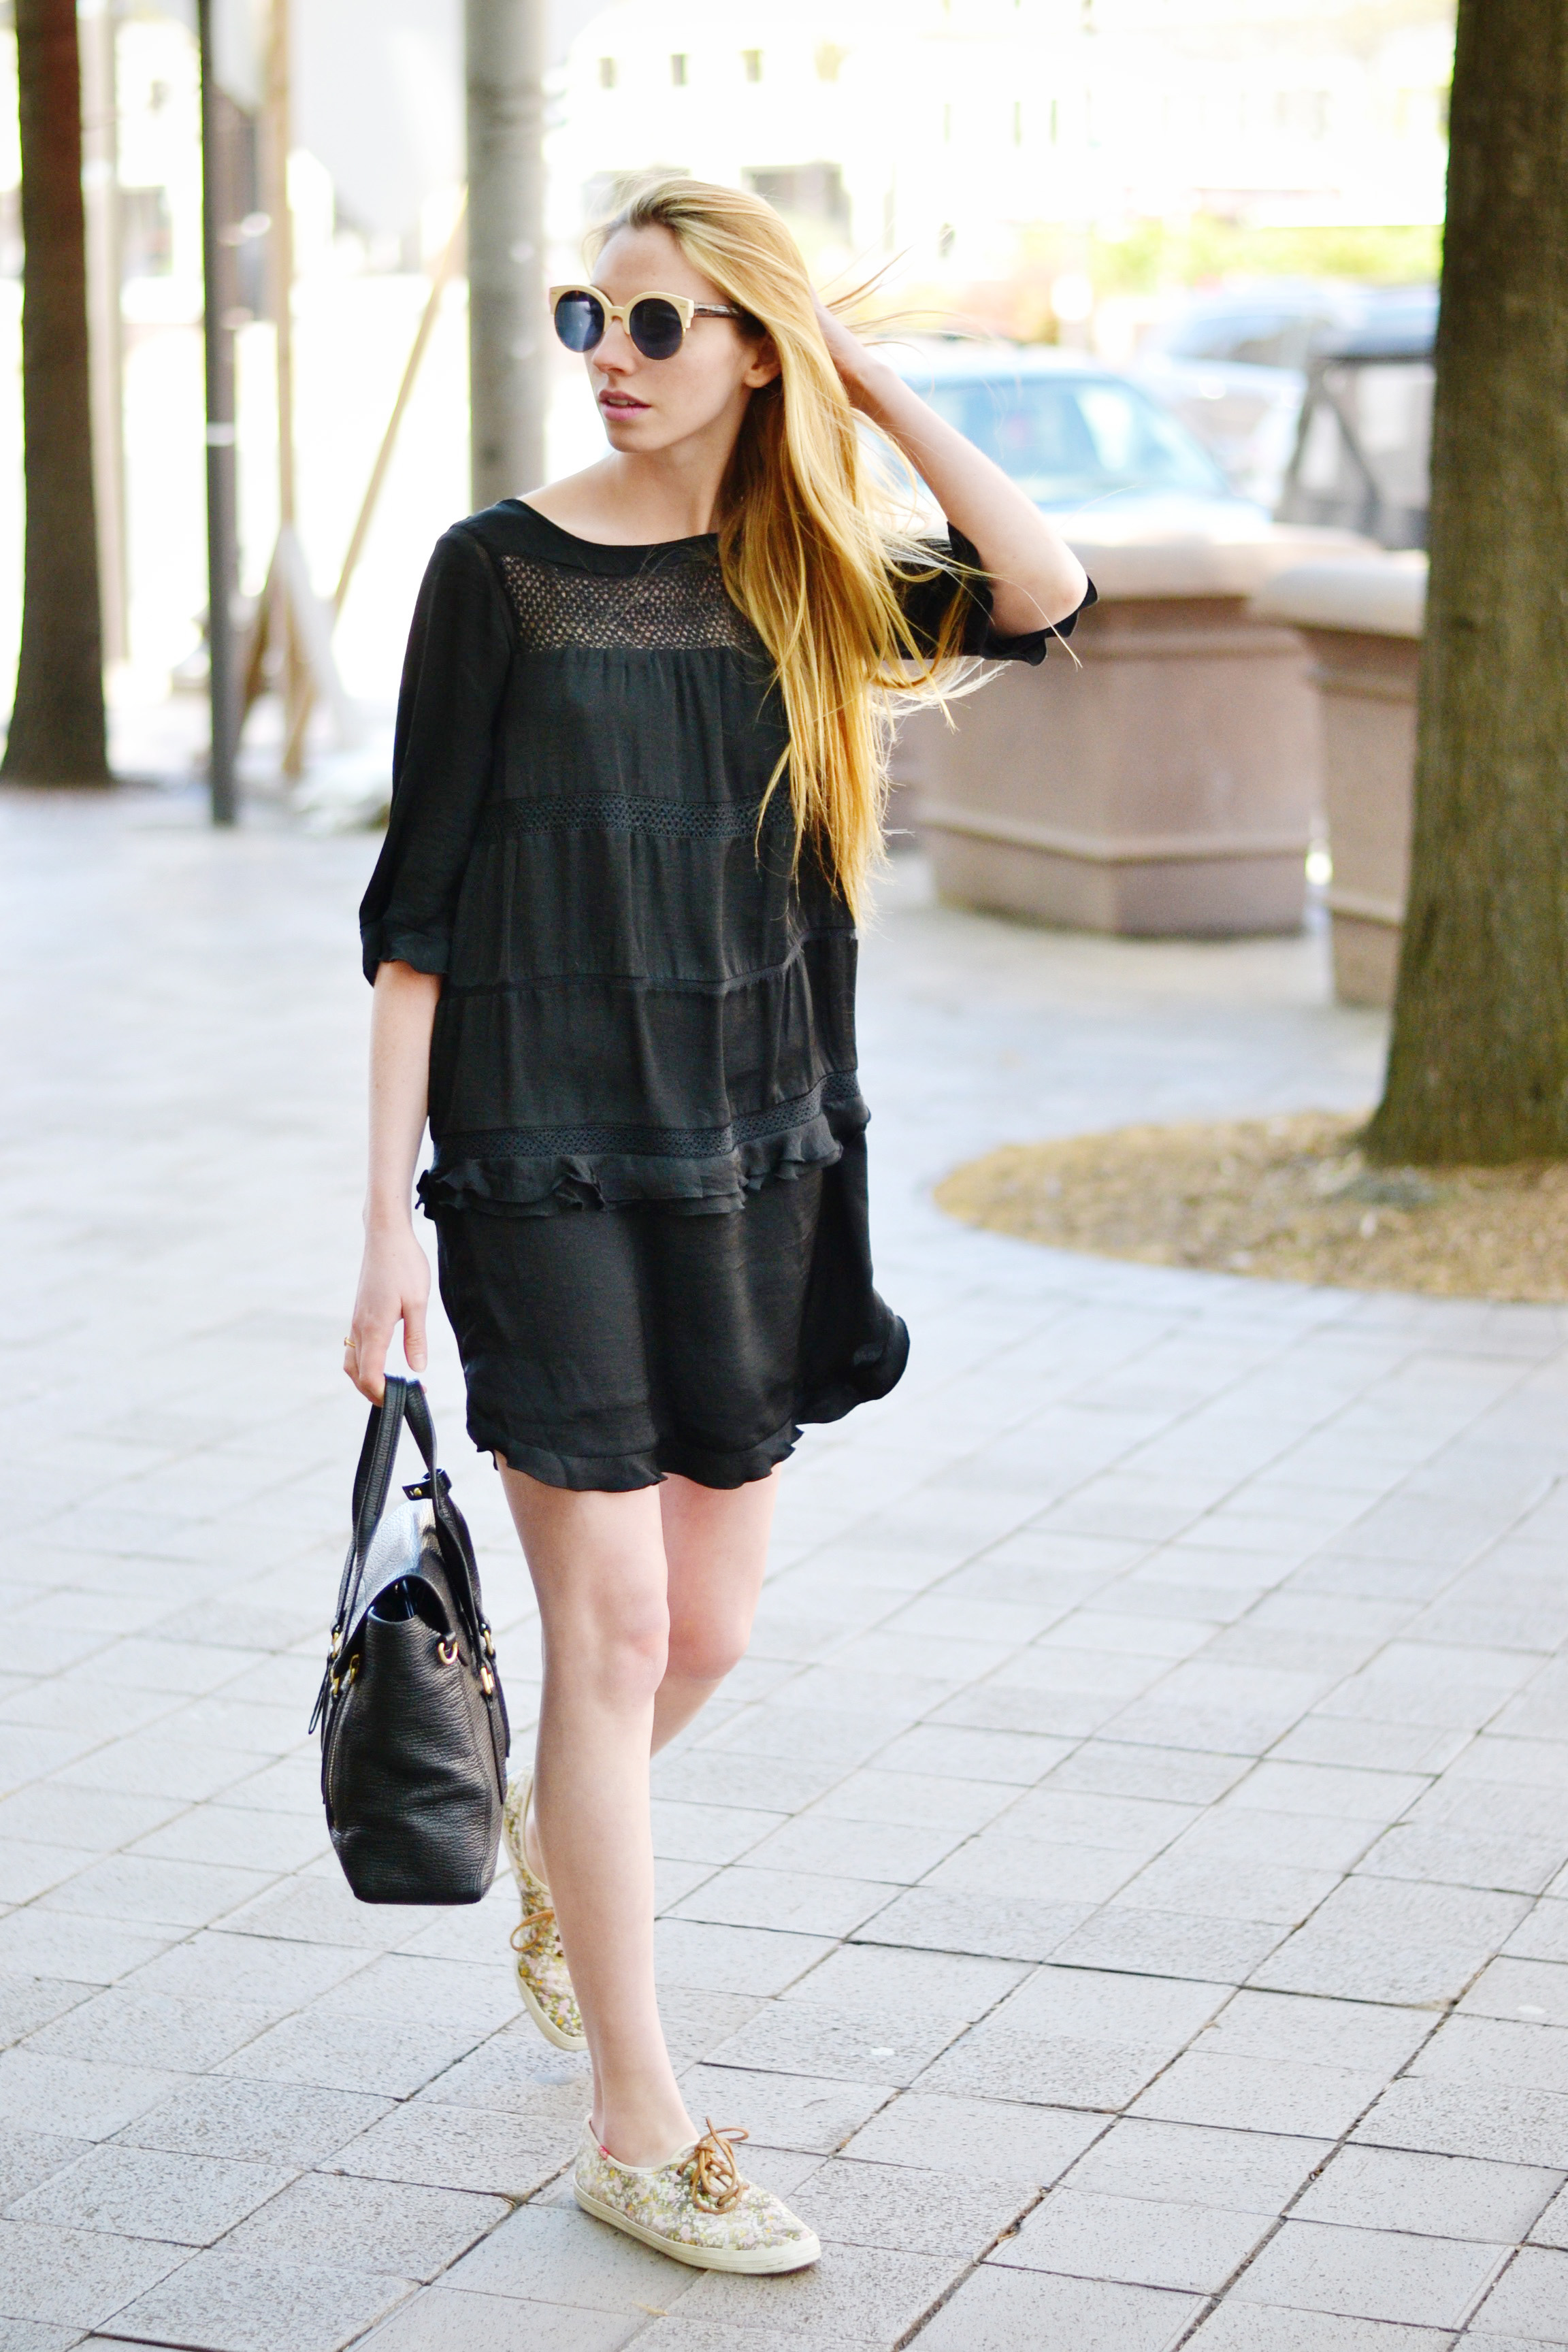 Who What Wear Black Dress (via Chic Now)